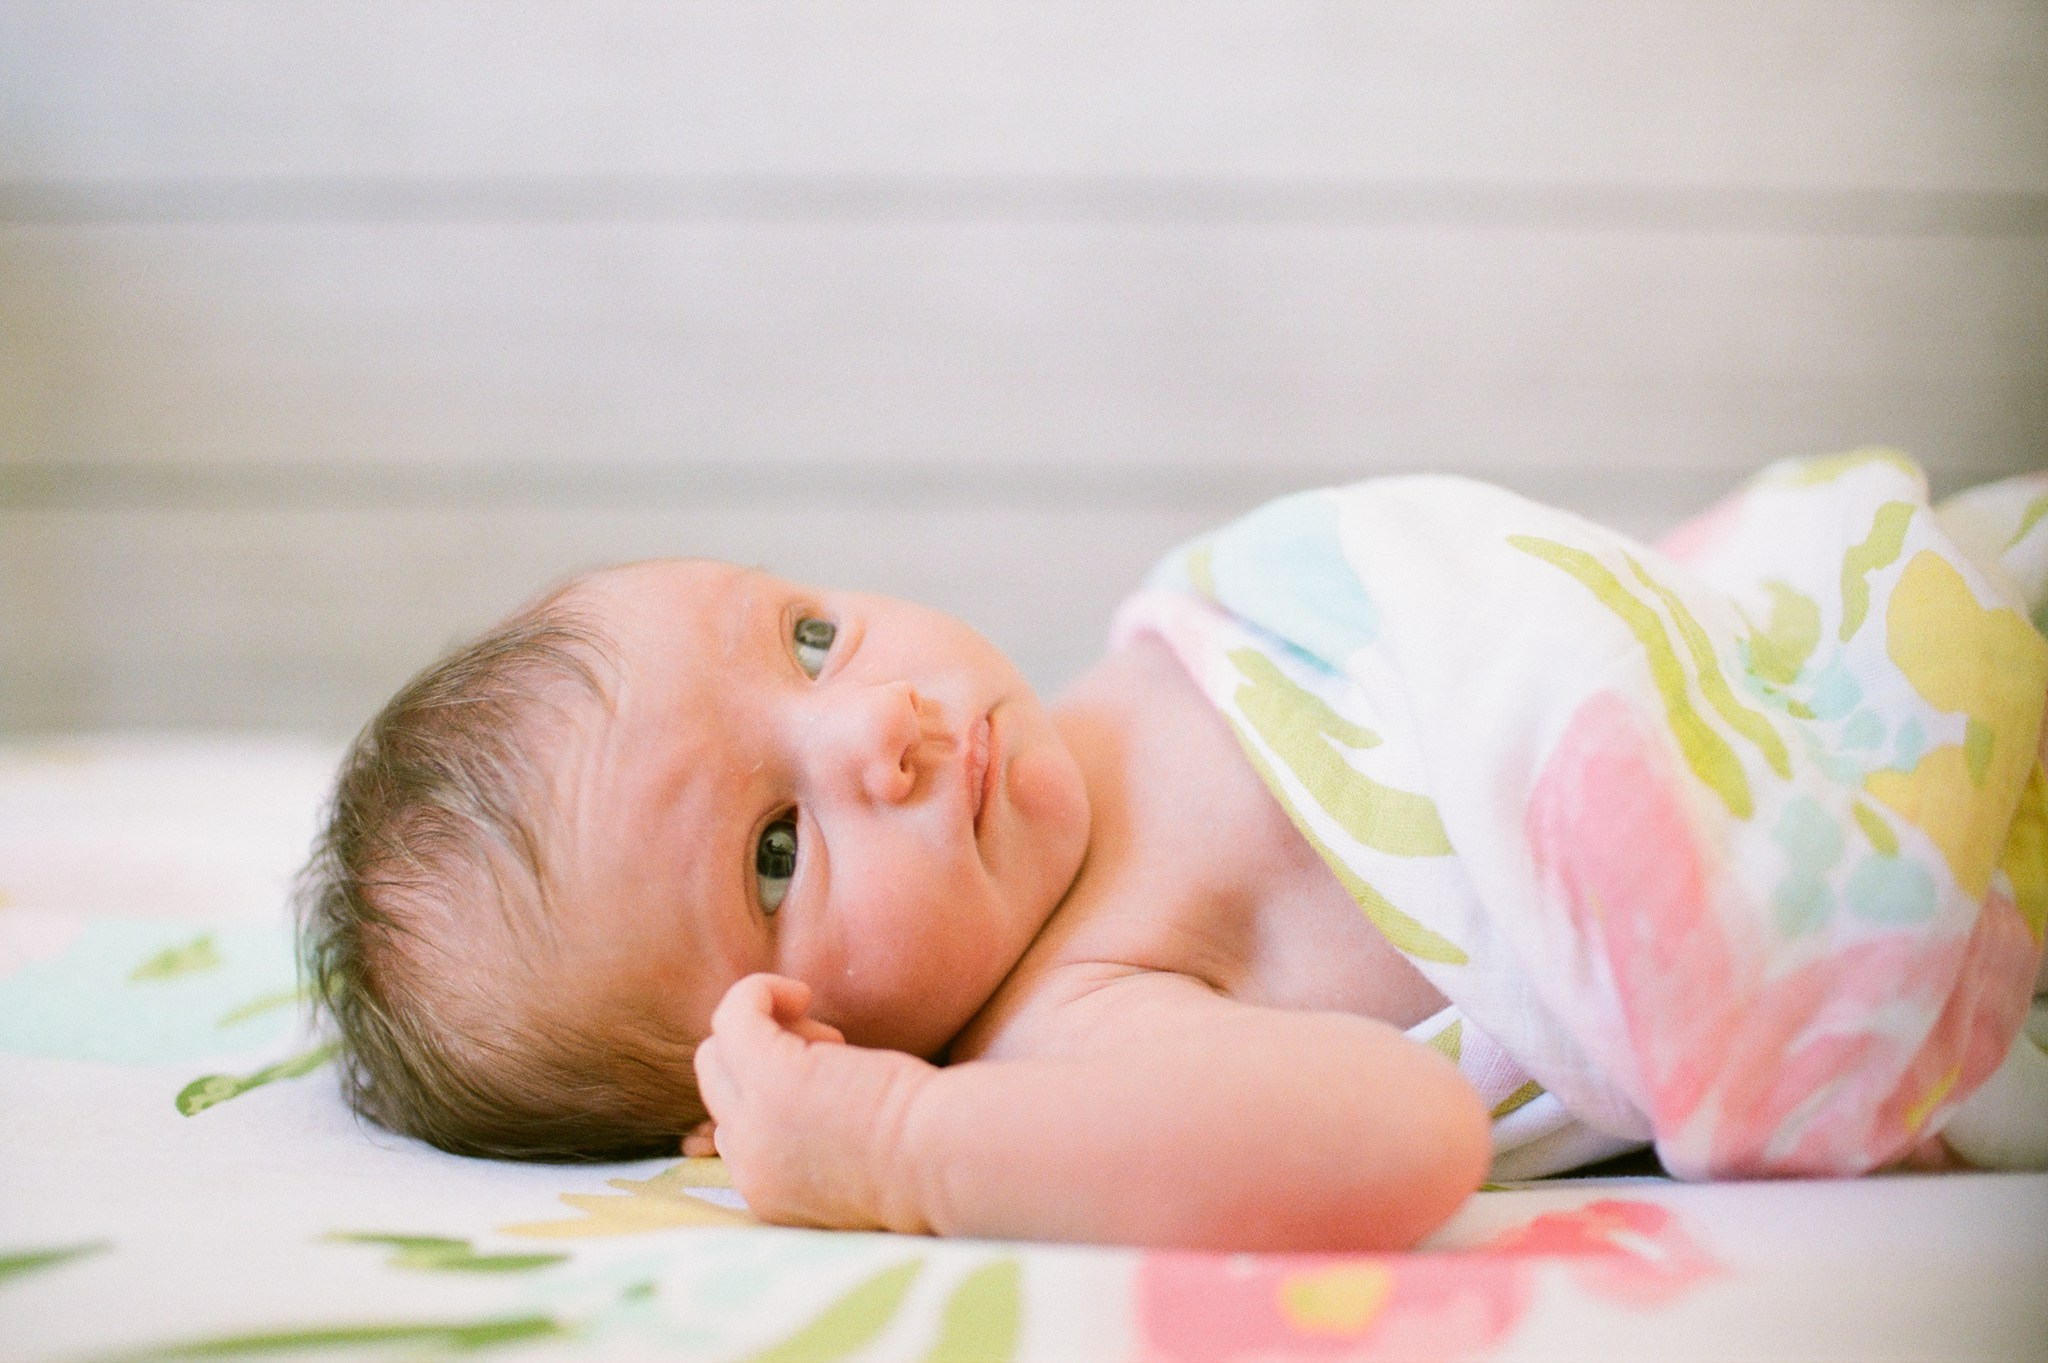 beverly_ma_newborn_portraits_00010.JPG